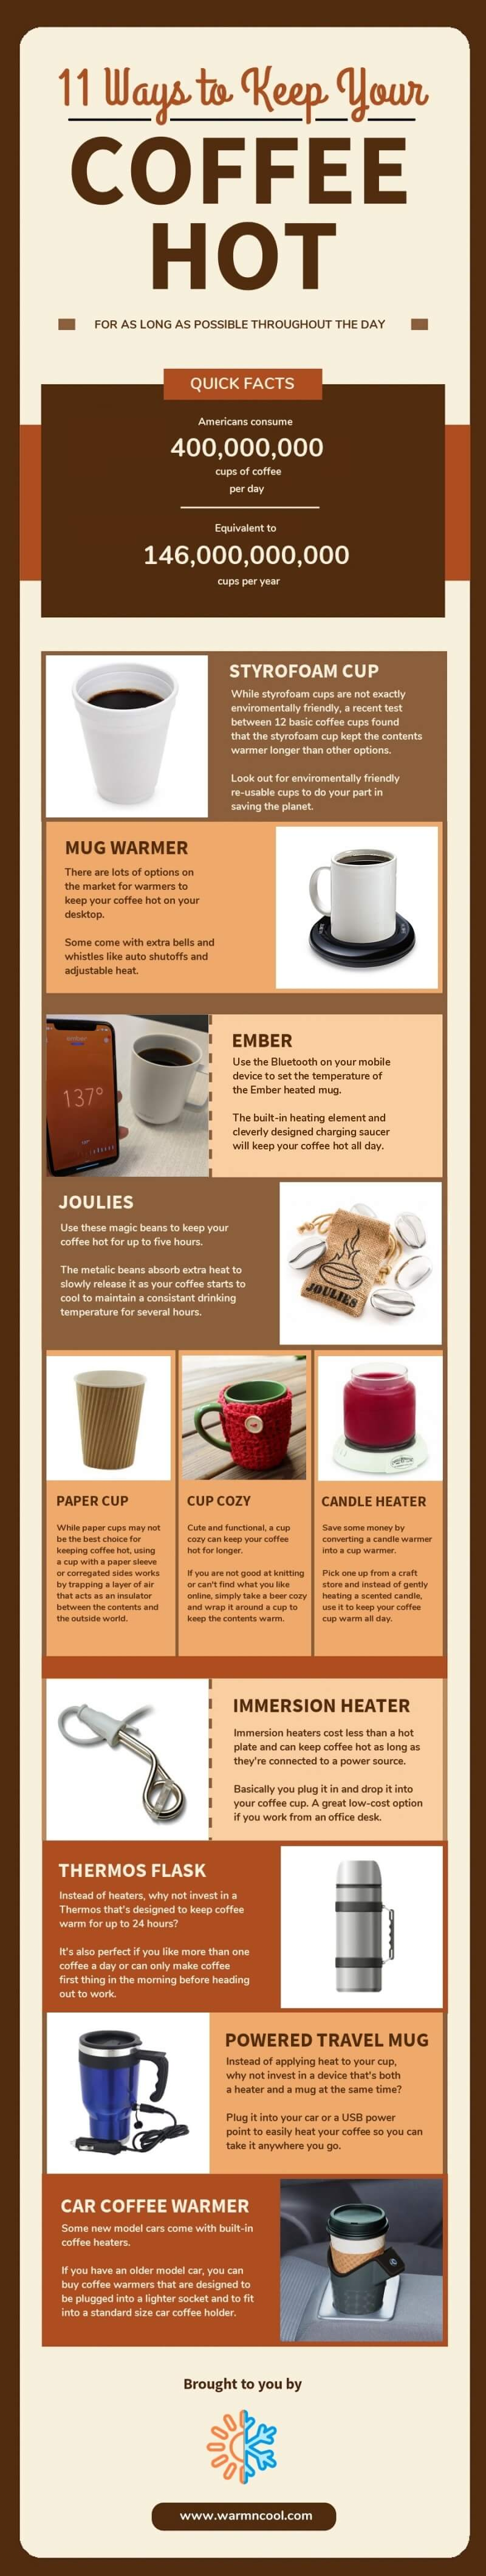 coffee infographic 800 2 - 11 Creative Ways To Keep Your Coffee Hot For As Long As Possible